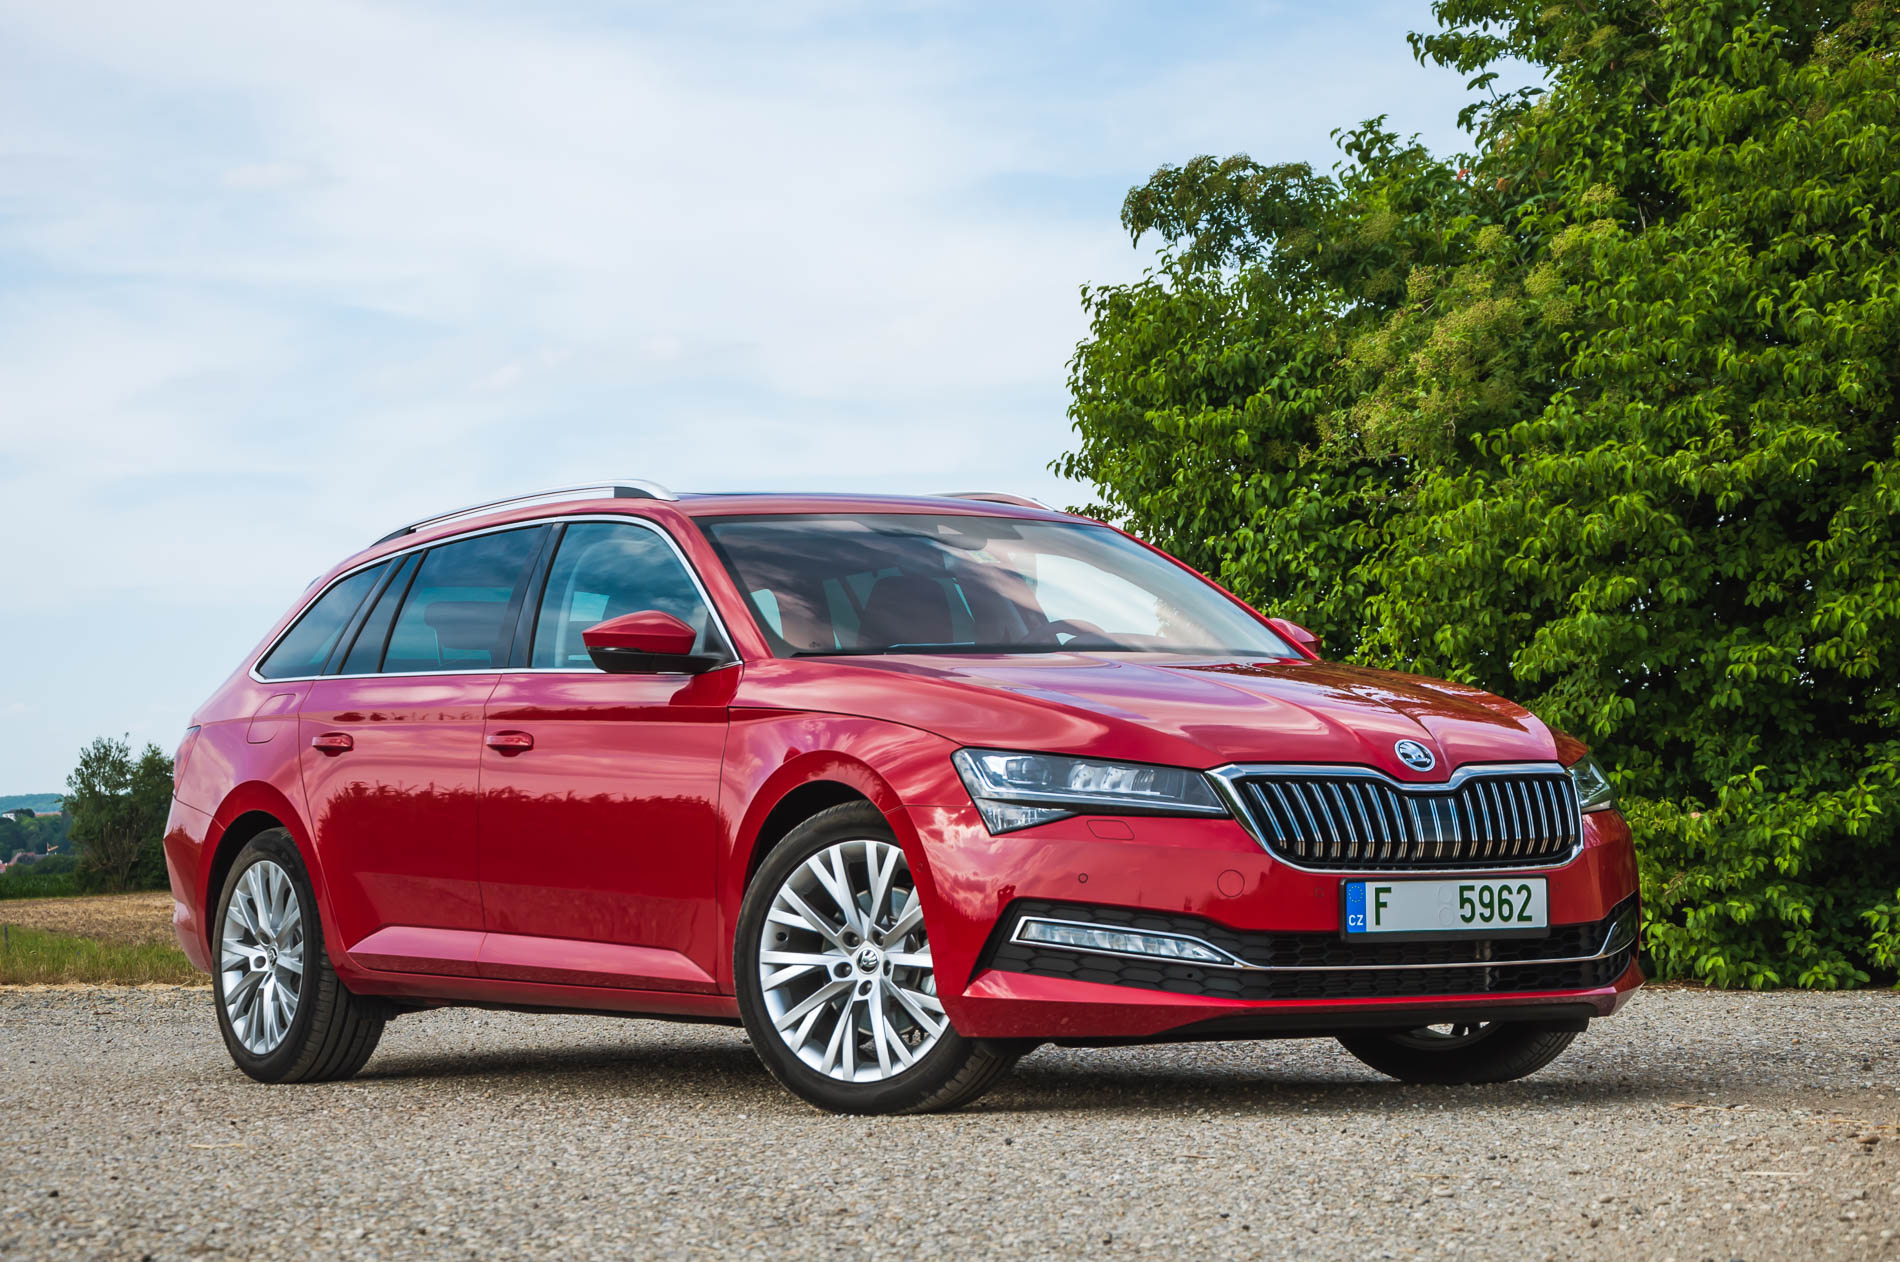 Skoda Superb Facelift (48 of 51)